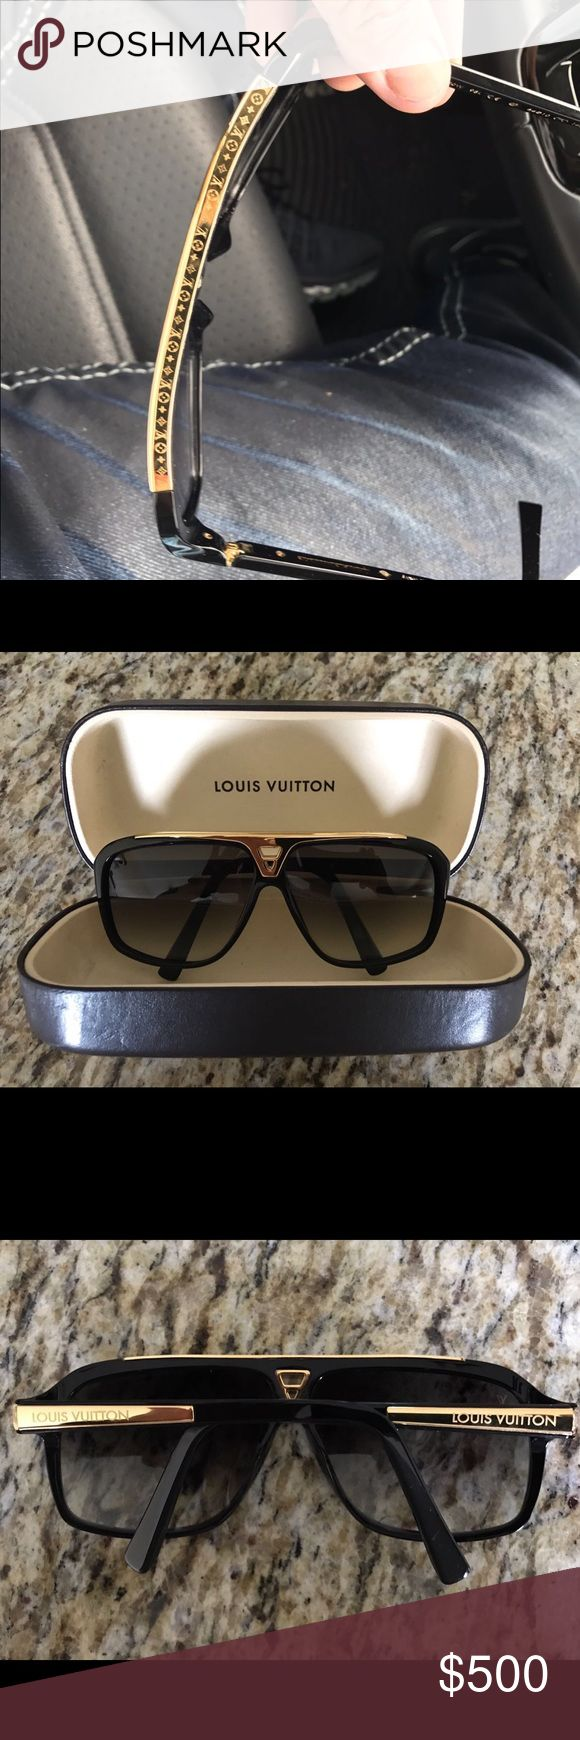 Authentic Louis Vuitton Evidence Sunglasses Z0350W Authentic Louis Vuitton Evidence Sunglasses Z0350W BLACK GOLD Aviator Style. These are 100% authentic and were purchased for $775.00 total. Glasses come with case. These are in awesome shape with very little hairline scratches (See all pics). There is very little scratches (barely noticeable), but all else in excellent shape. These do have the flexible hinges. Own now for way less than retail, and stand out from the crowd. Priced to sell…